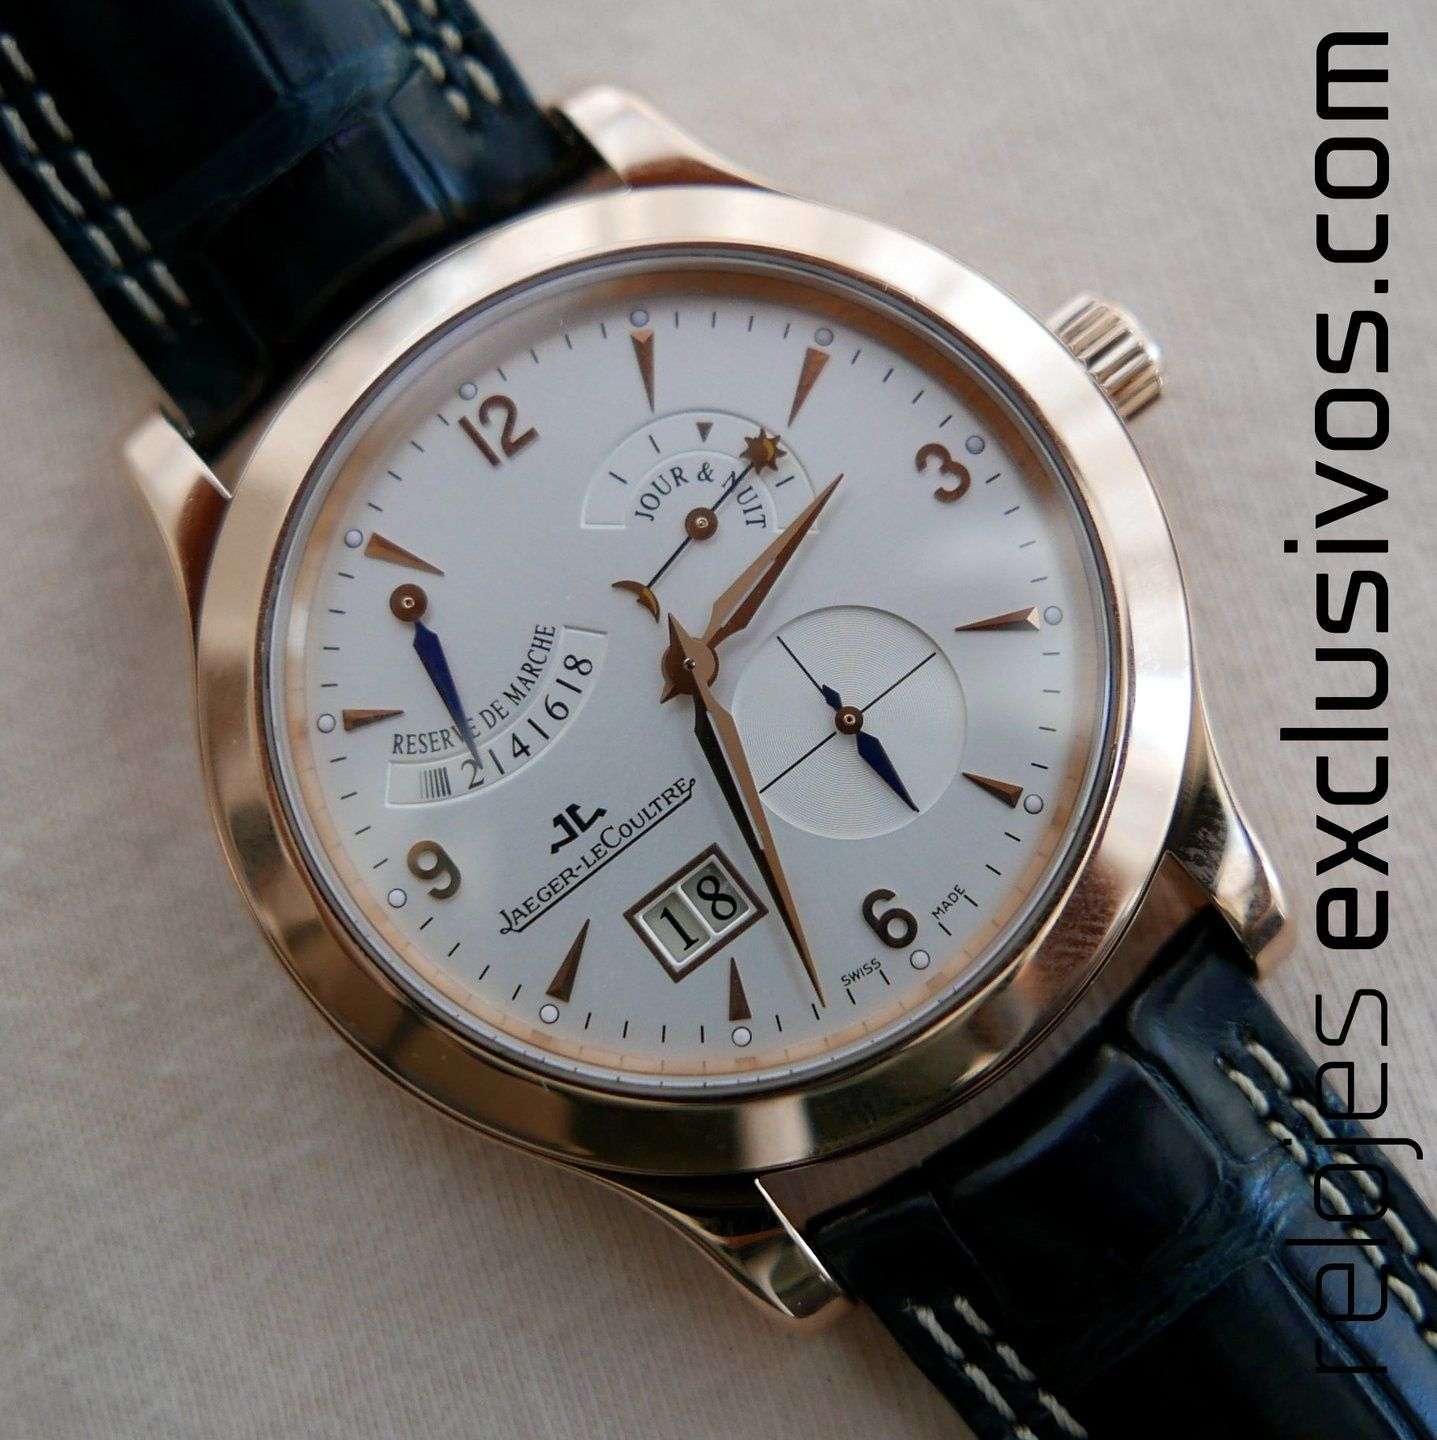 Relojes Exclusivos. We sell watches of the finest brands